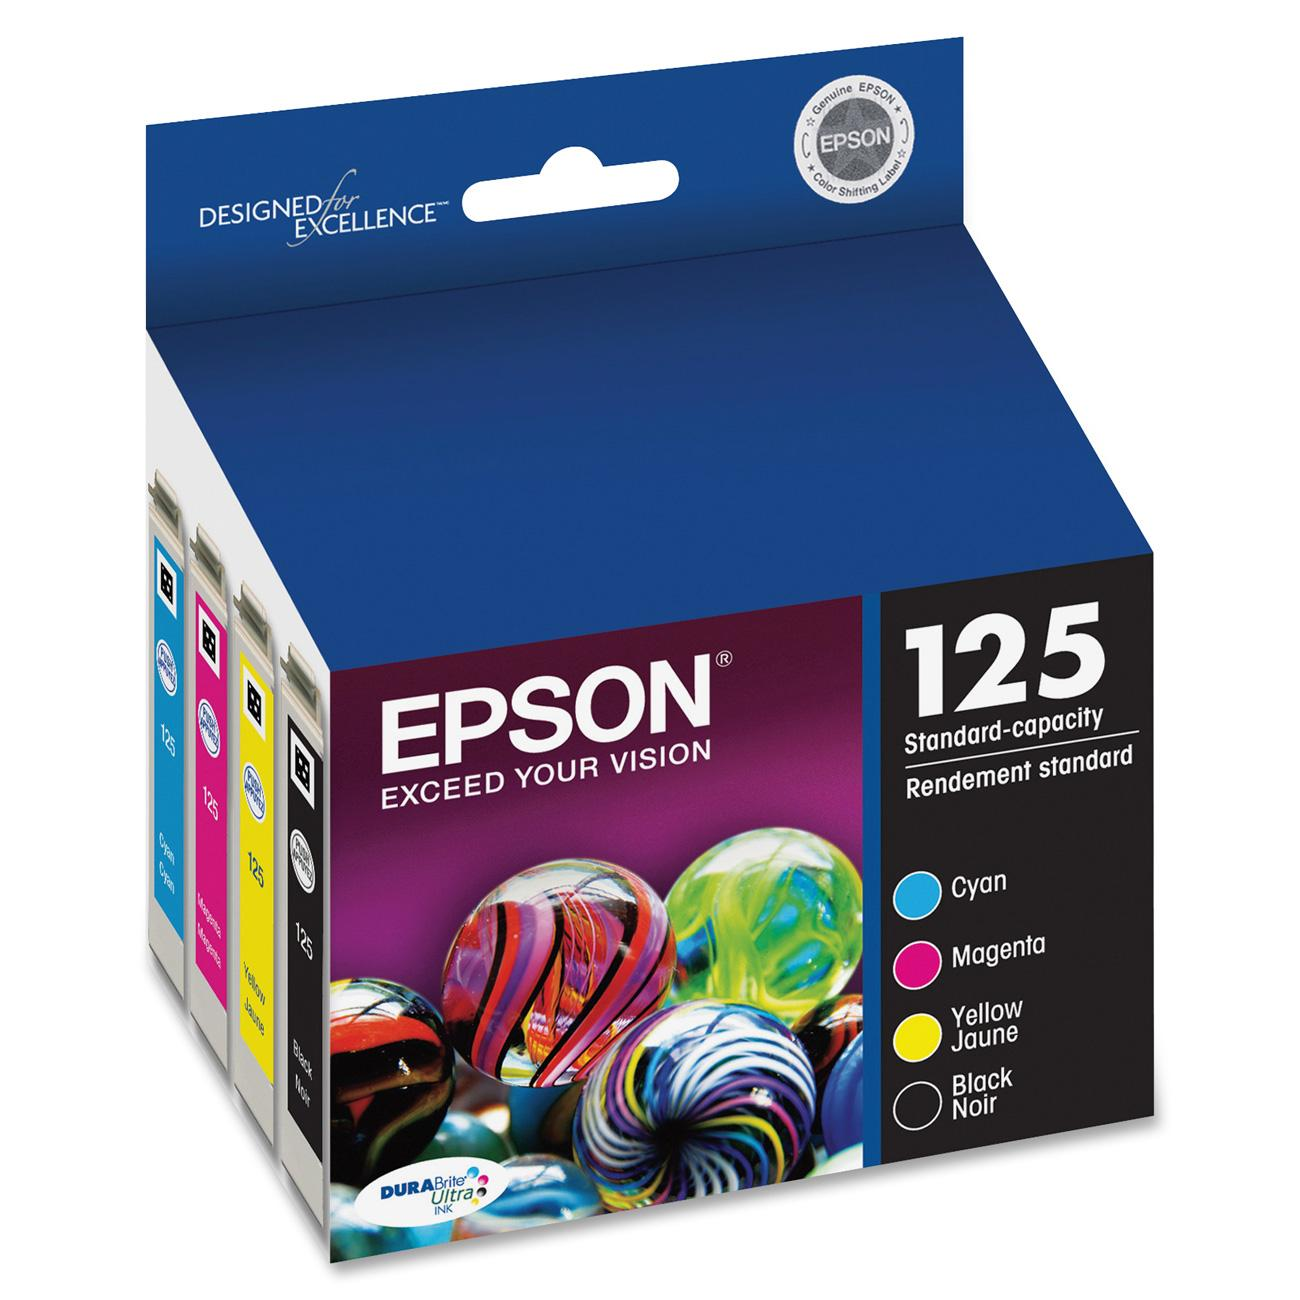 Epson 125 DURABrite Original Ink Cartridge